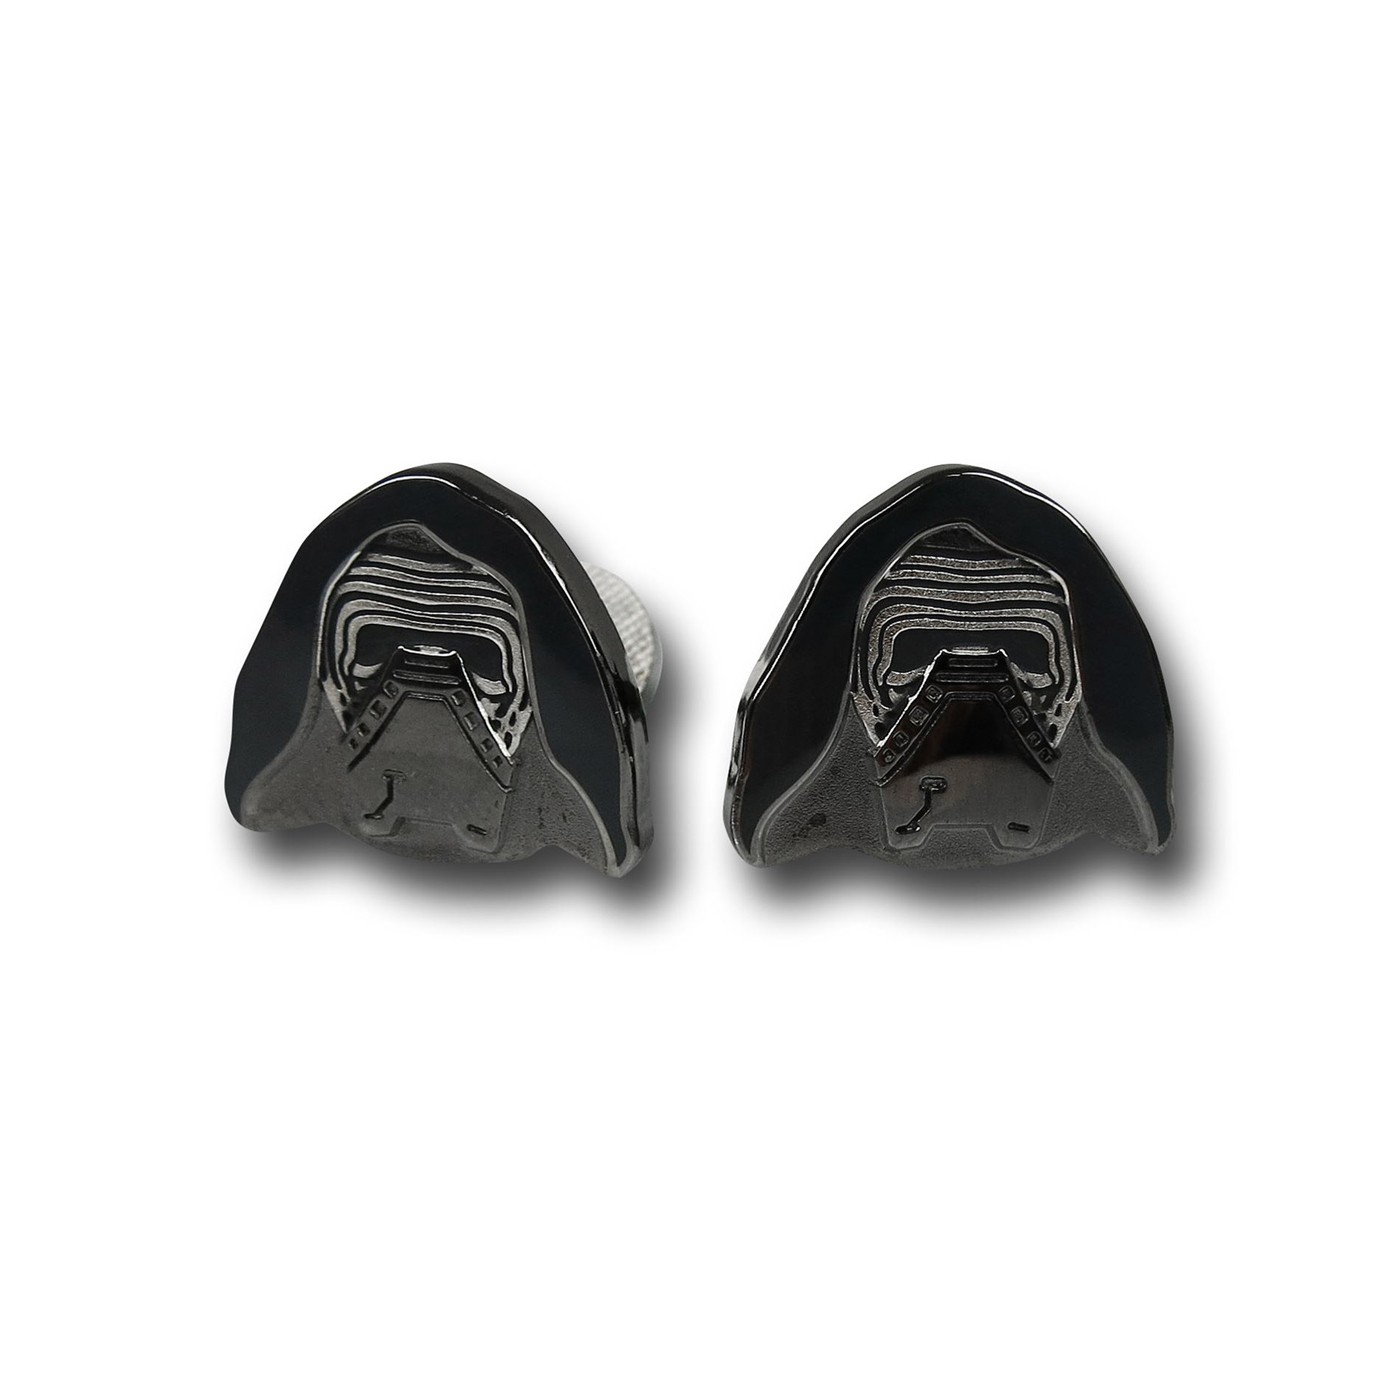 Star Wars Force Awakens Kylo Ren Cufflinks